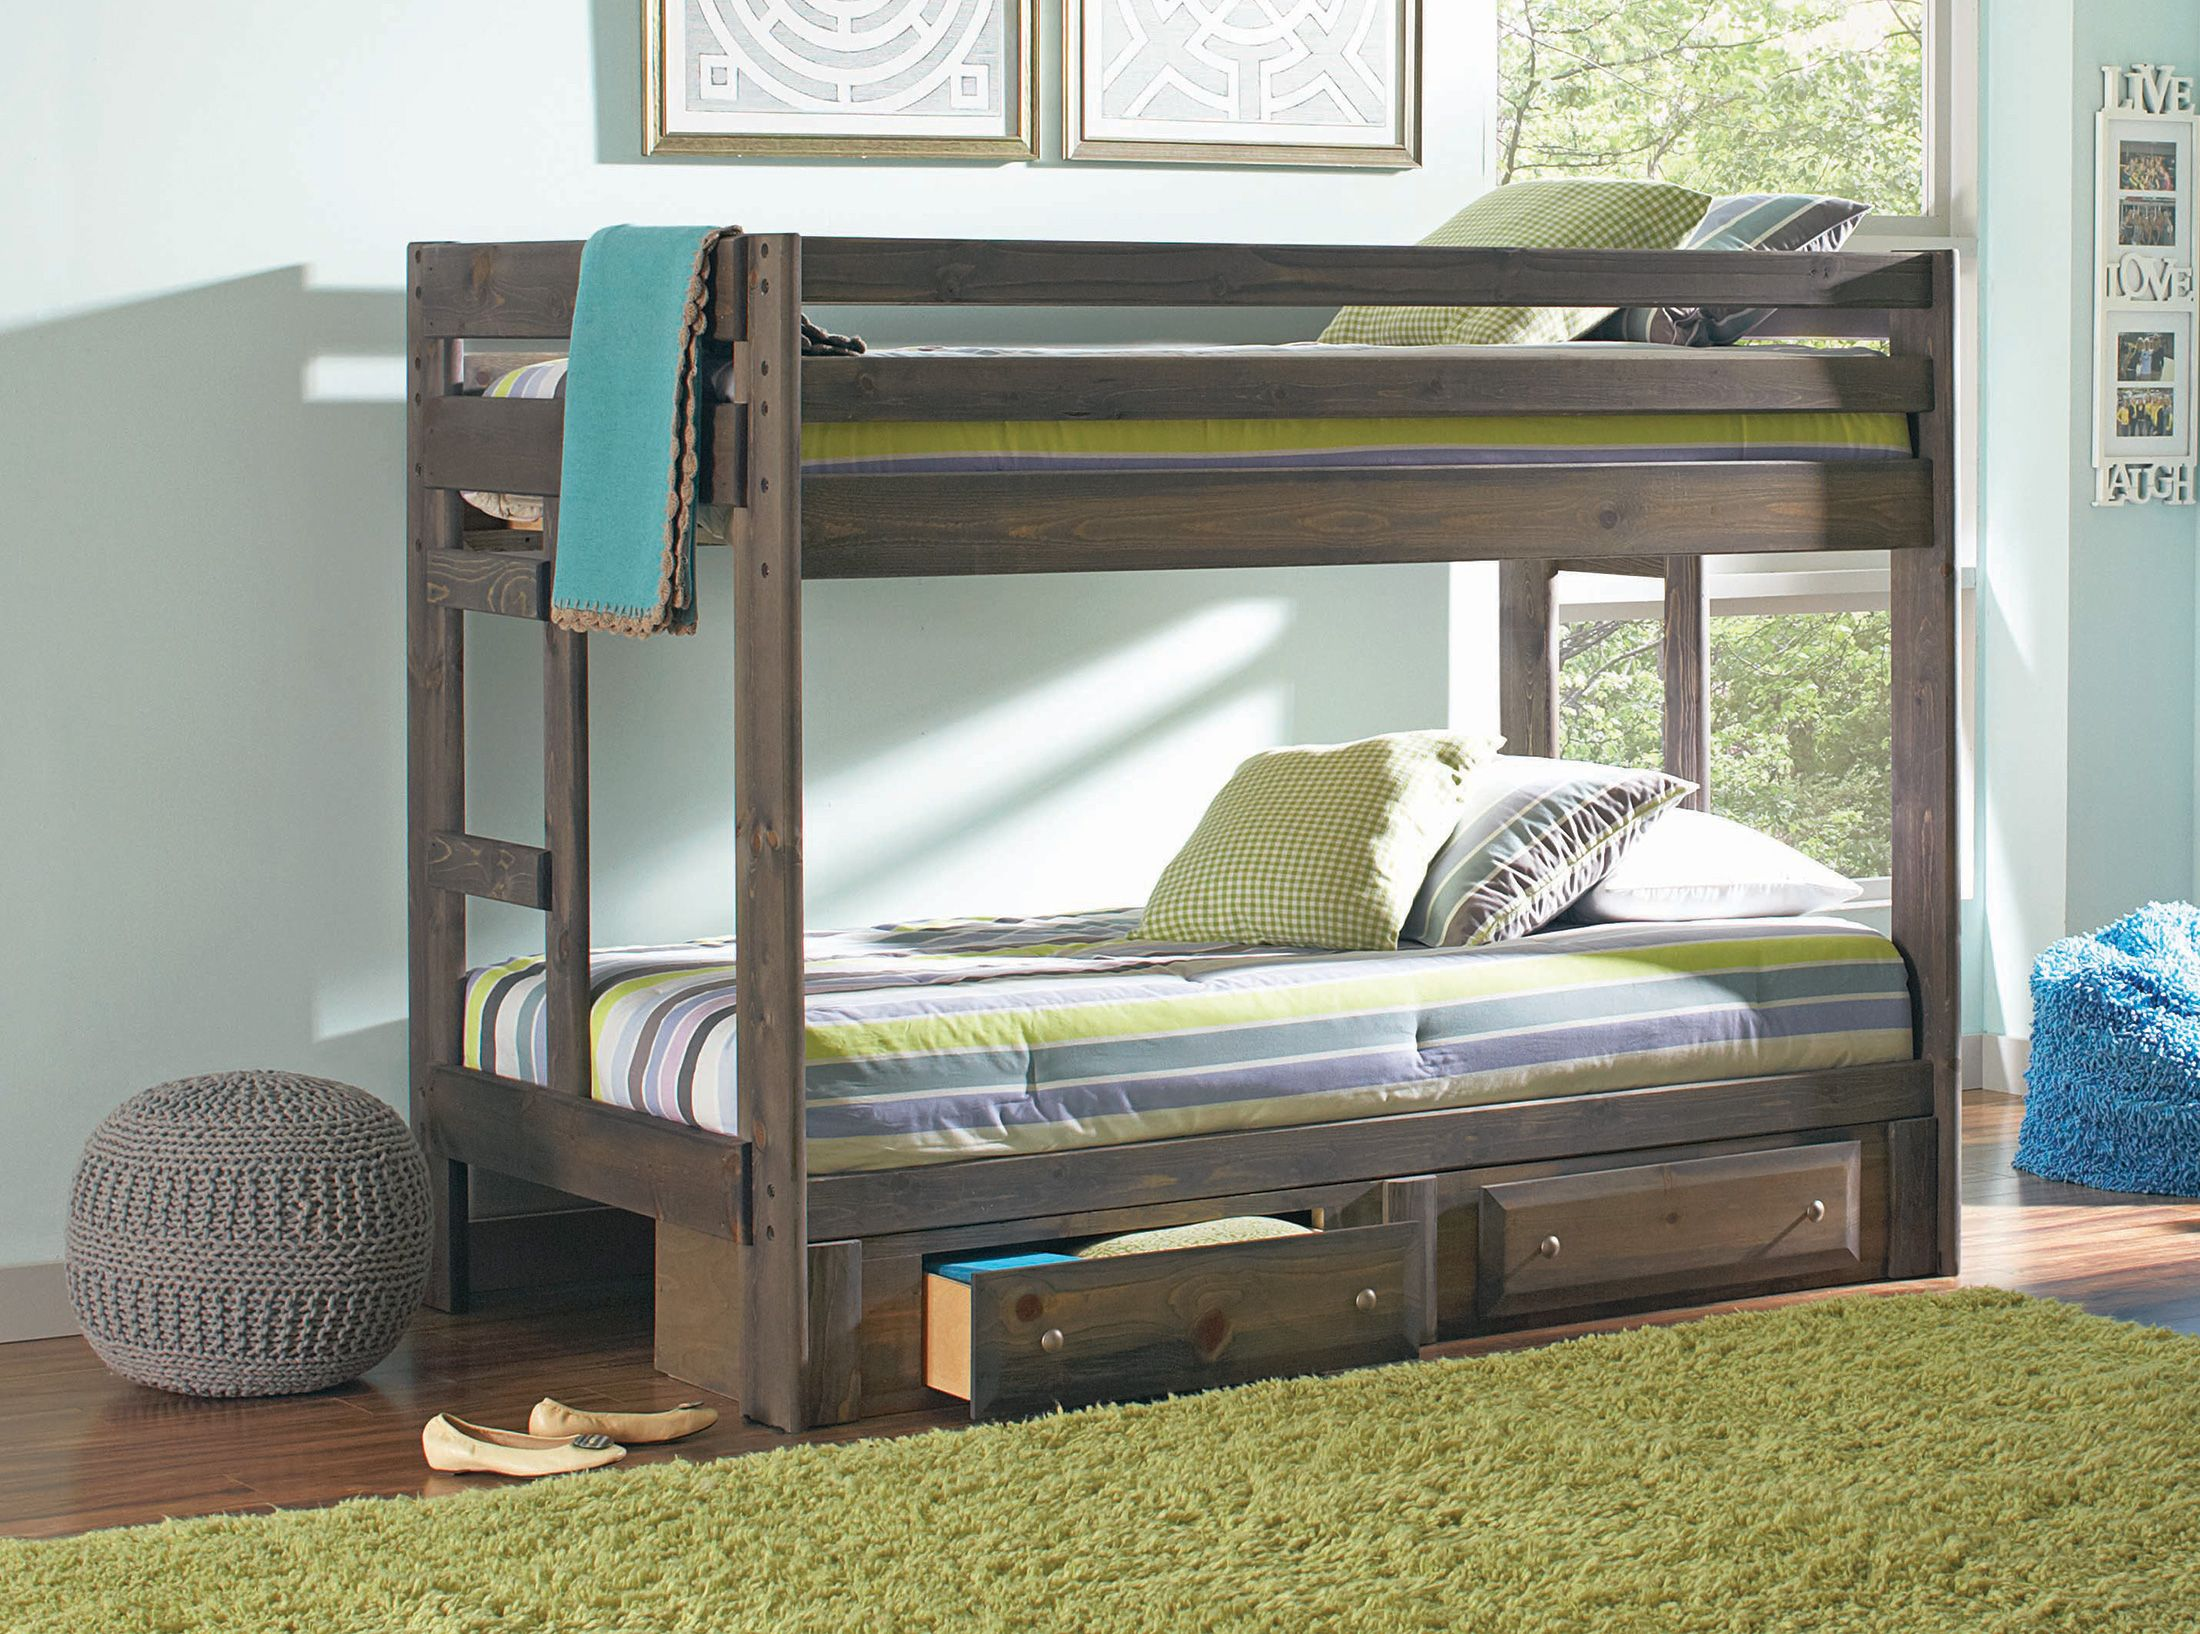 Slide for loft bed  Wrangle Hill Gray TwinFull Bunk Bed  Twin full bunk bed Full bunk